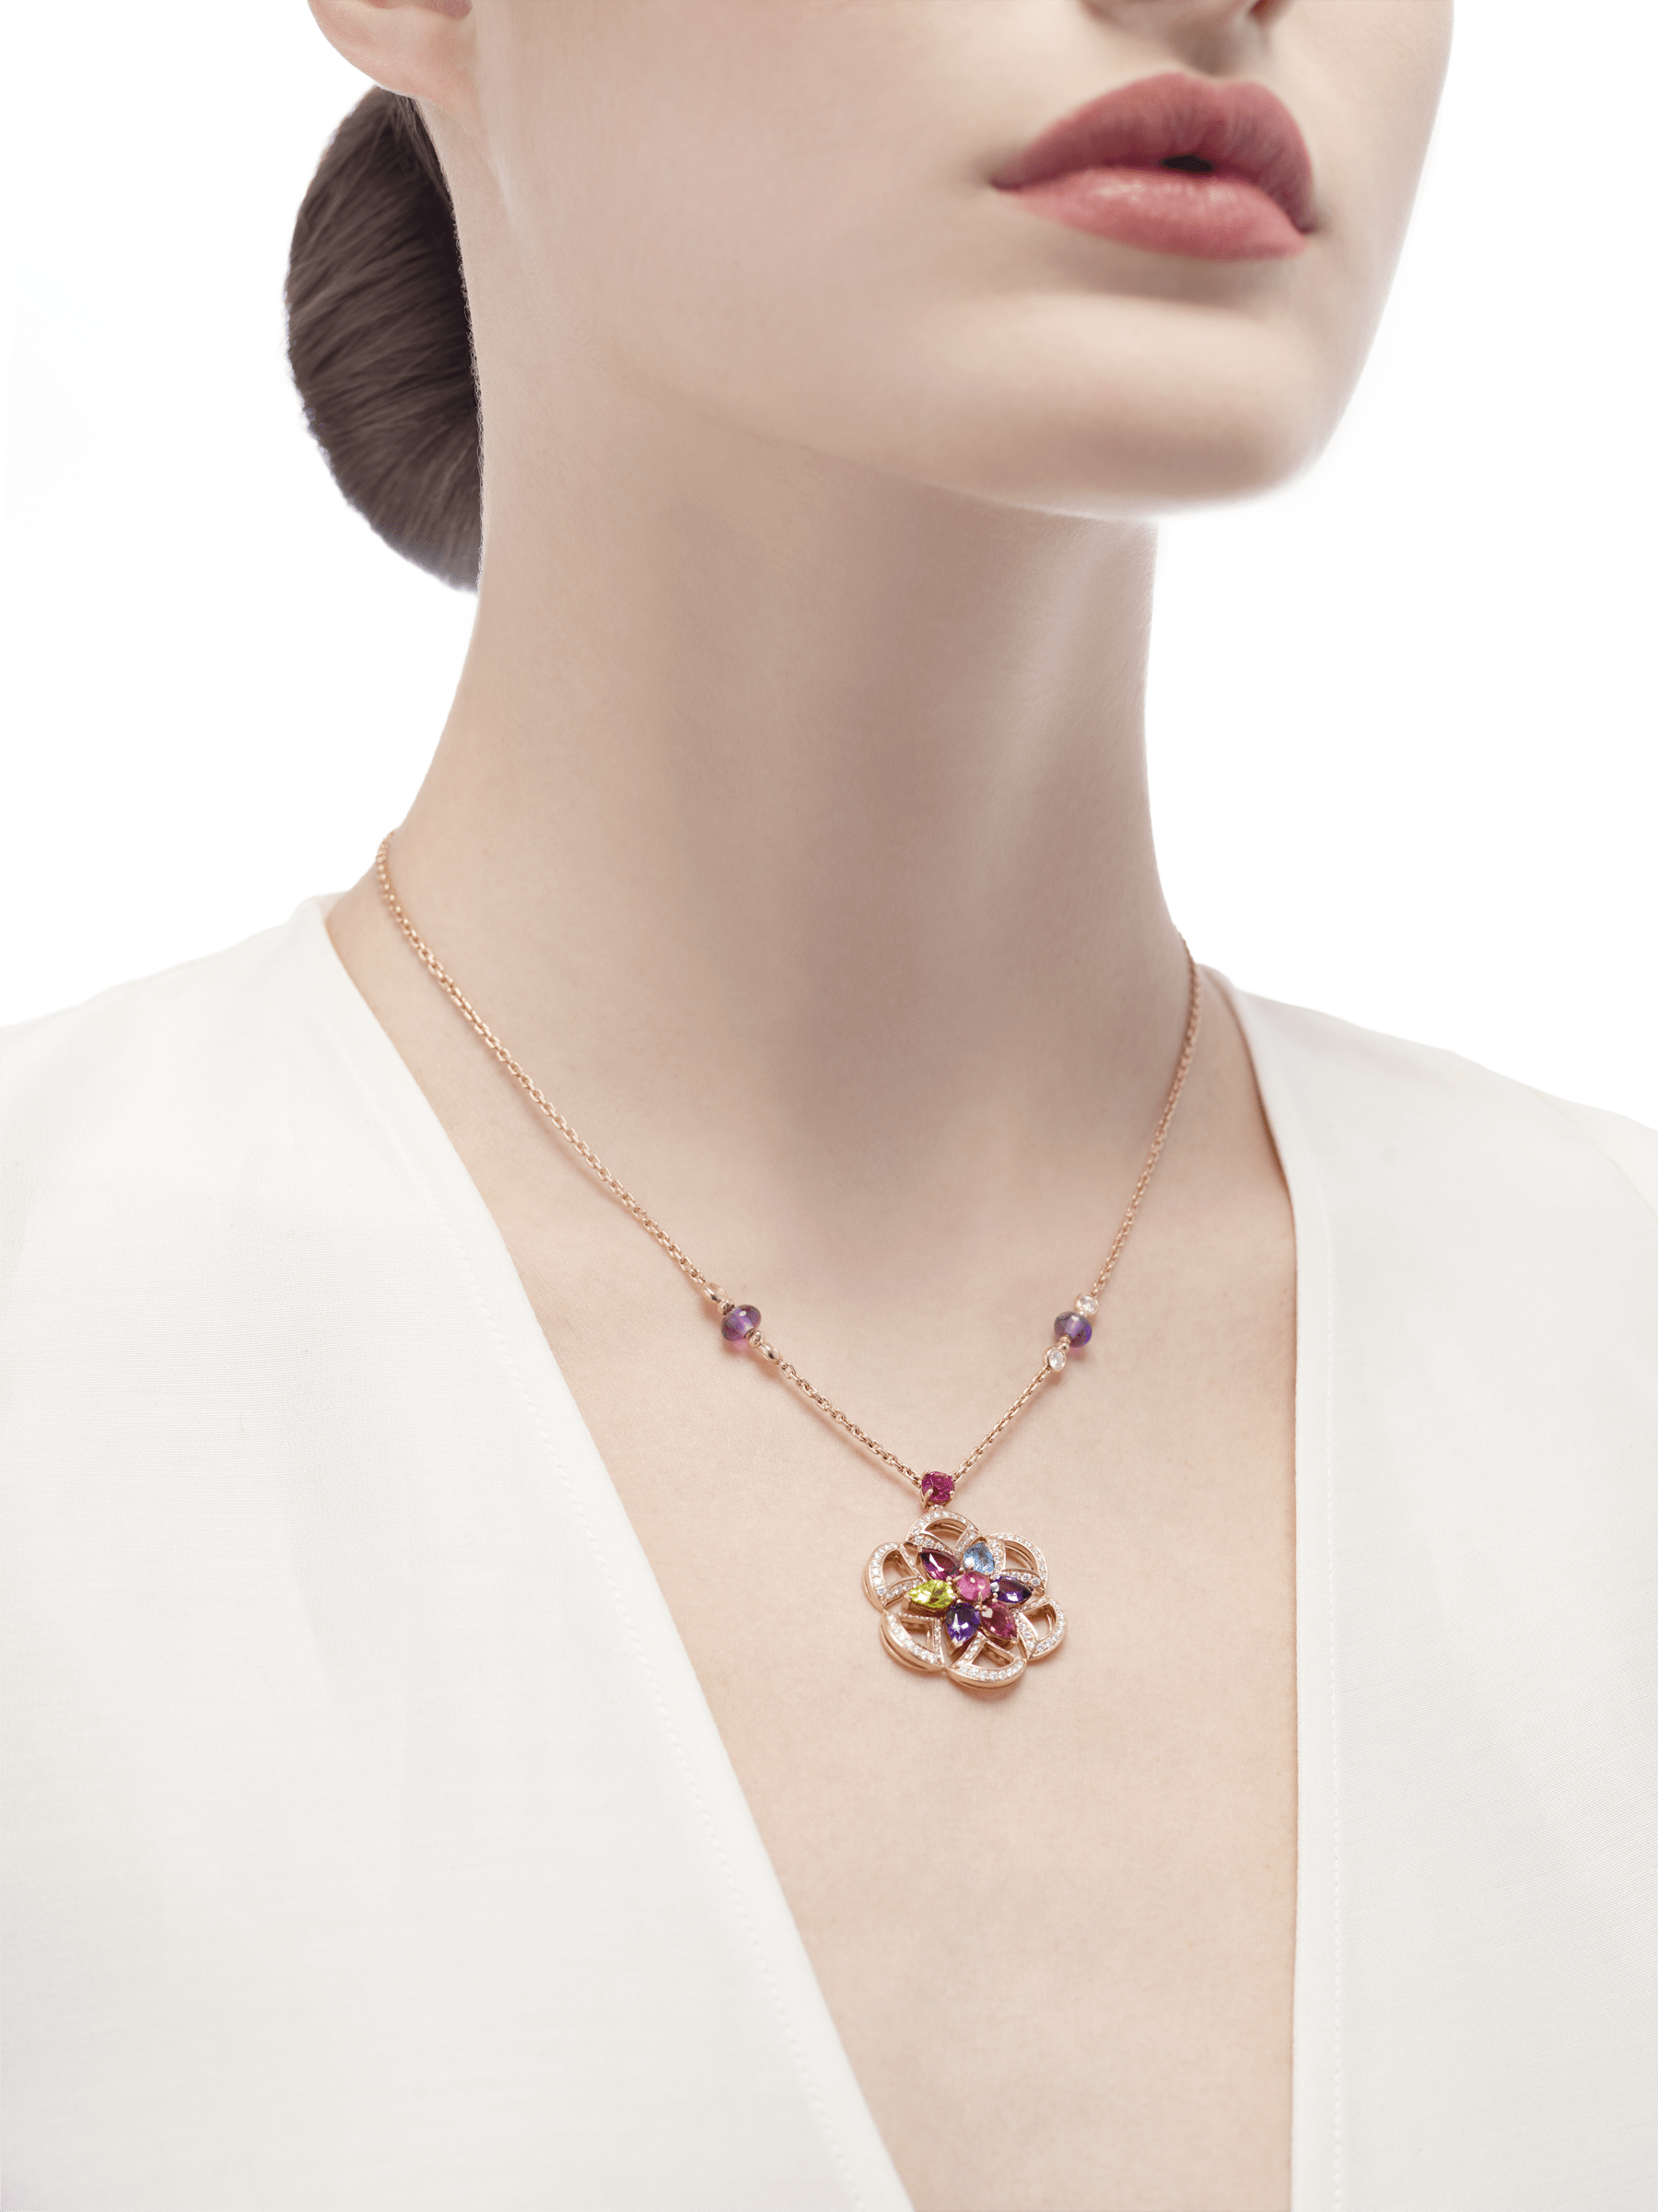 DIVAS' DREAM 18 kt rose gold necklace set with coloured gemstones and pavé diamonds 355617 image 4